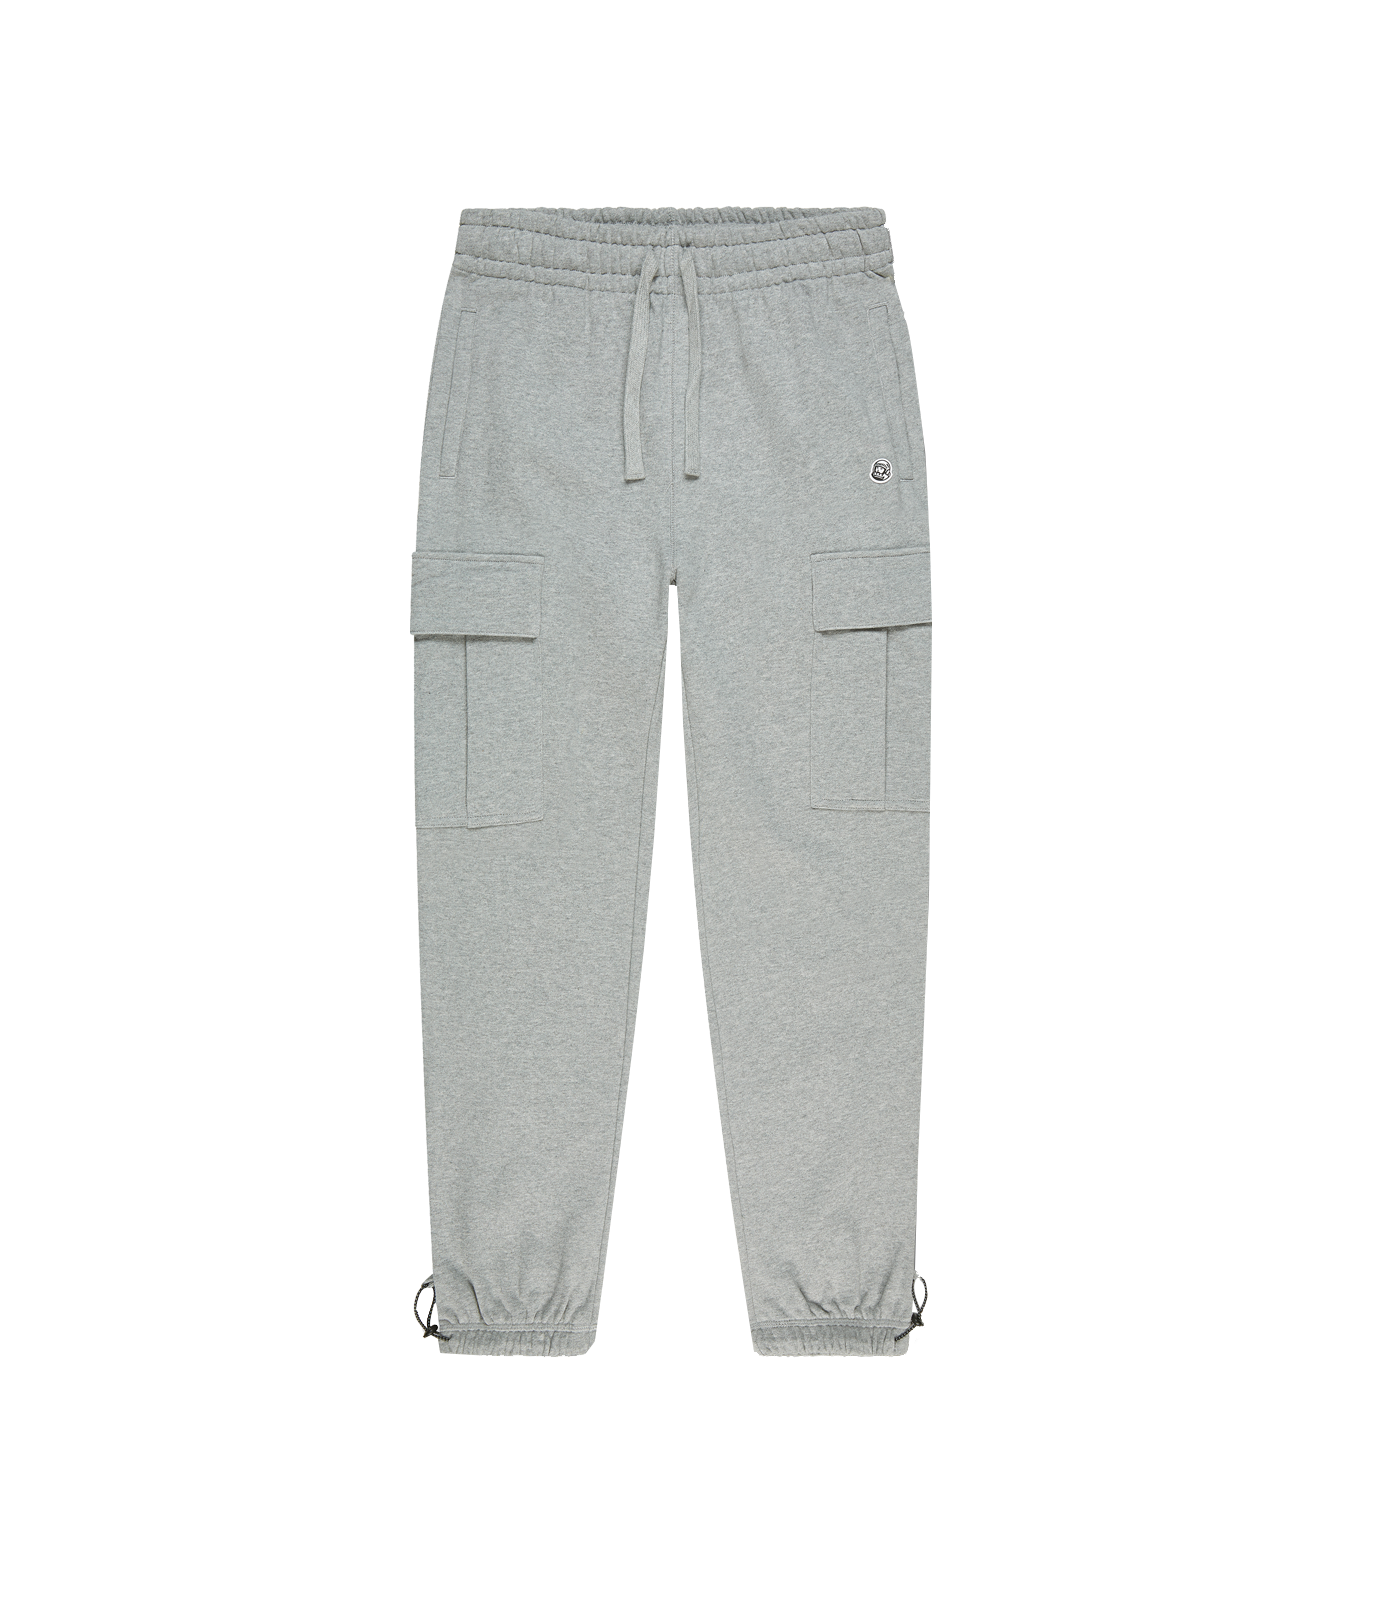 COTTON CARGO SWEATPANT - HEATHER GREY